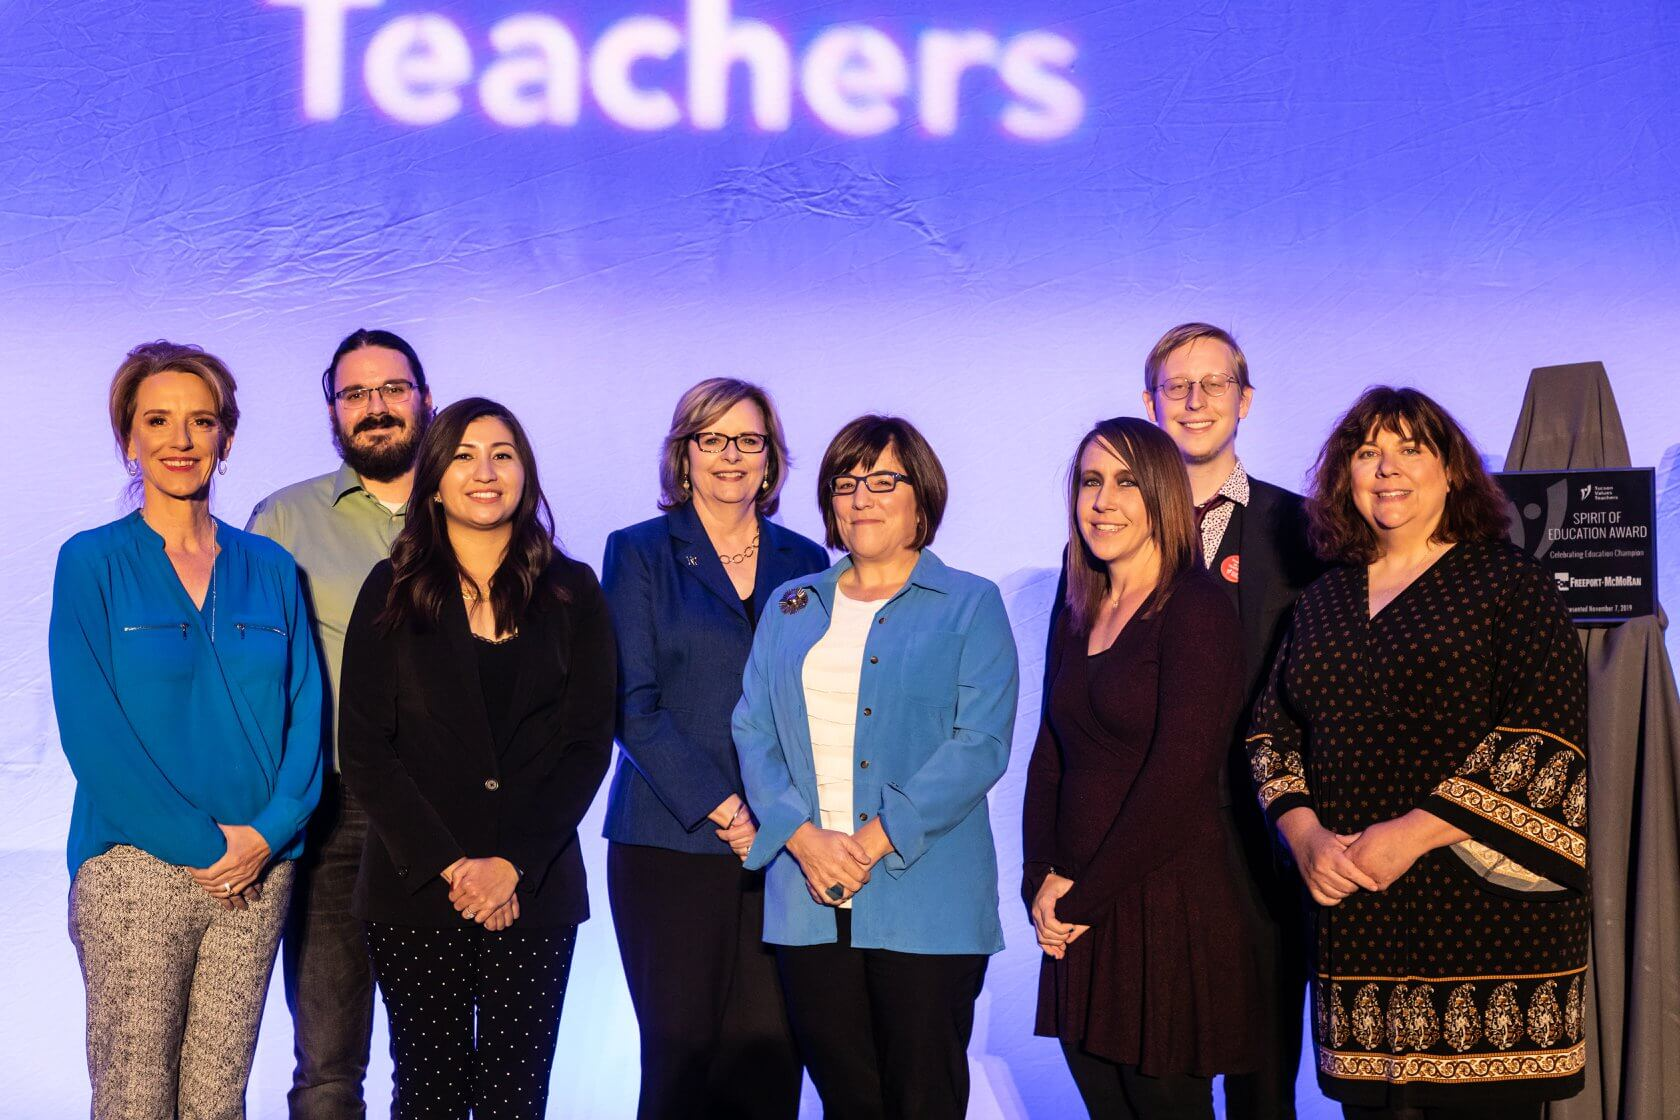 Raytheon Leaders in Education Awards